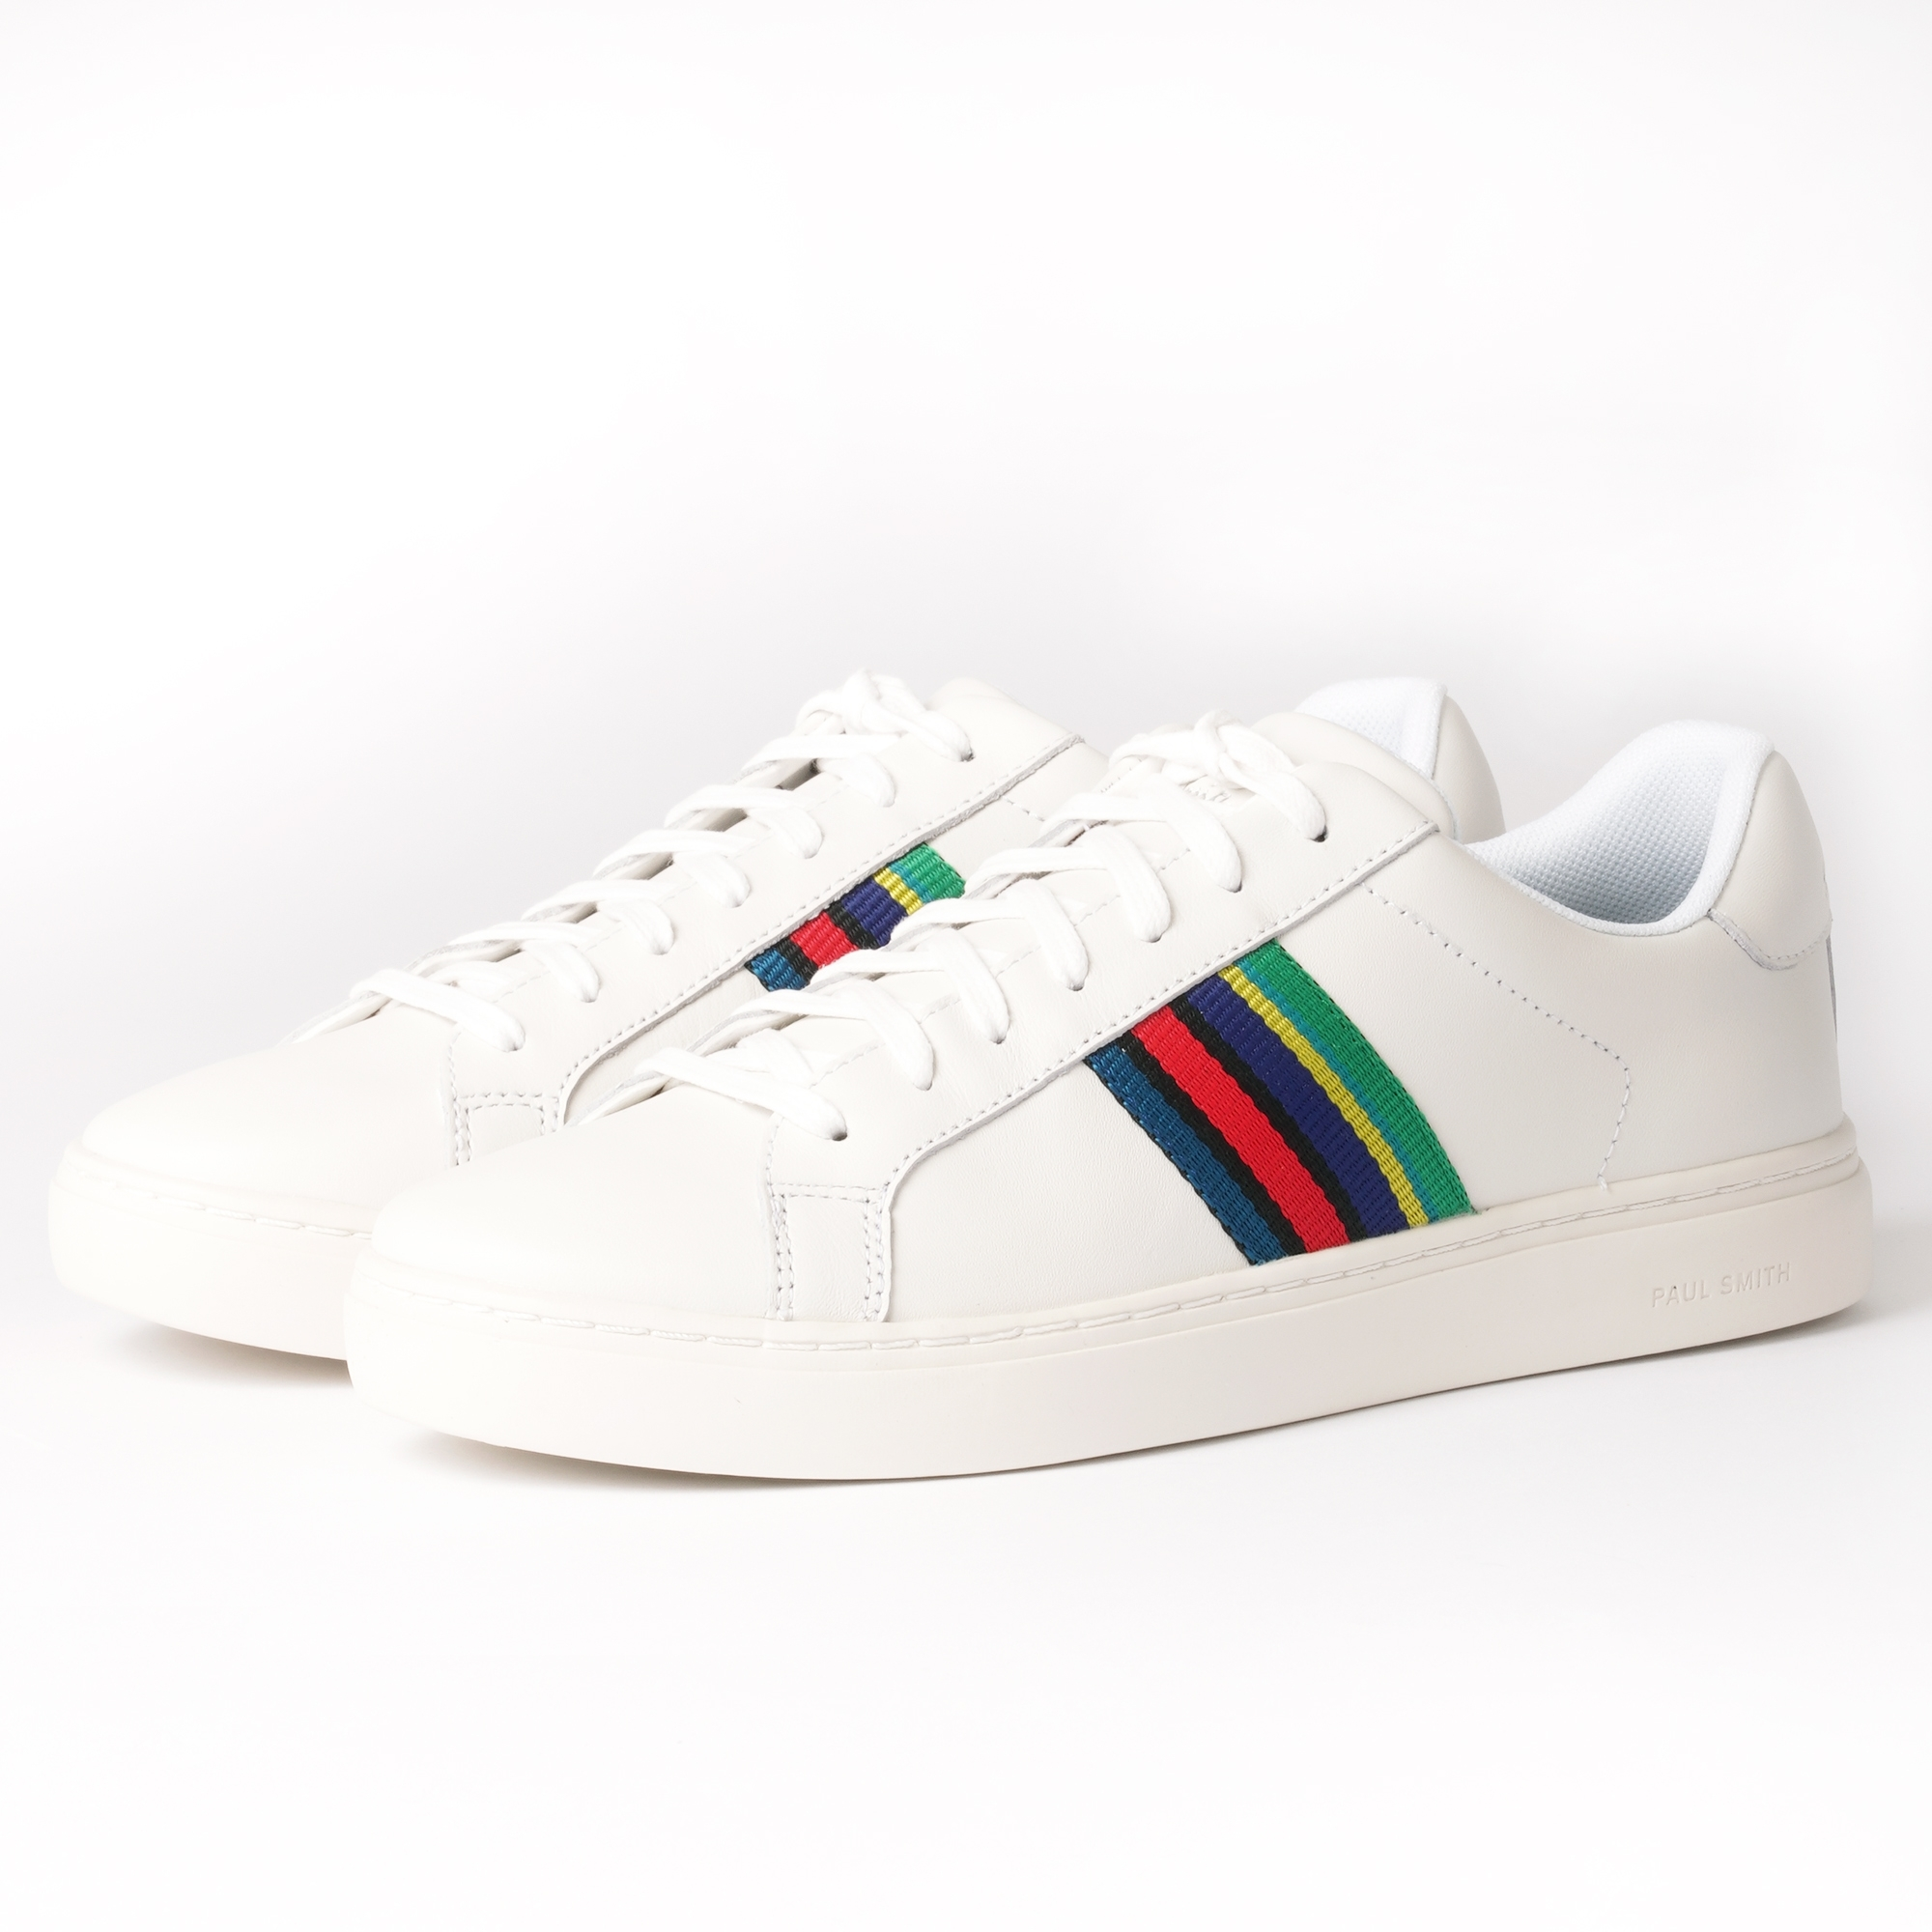 77041fd3356 PS by Paul Smith Lapin Mono Lux Sneakers | White | M2S-LAP01-AMLUX